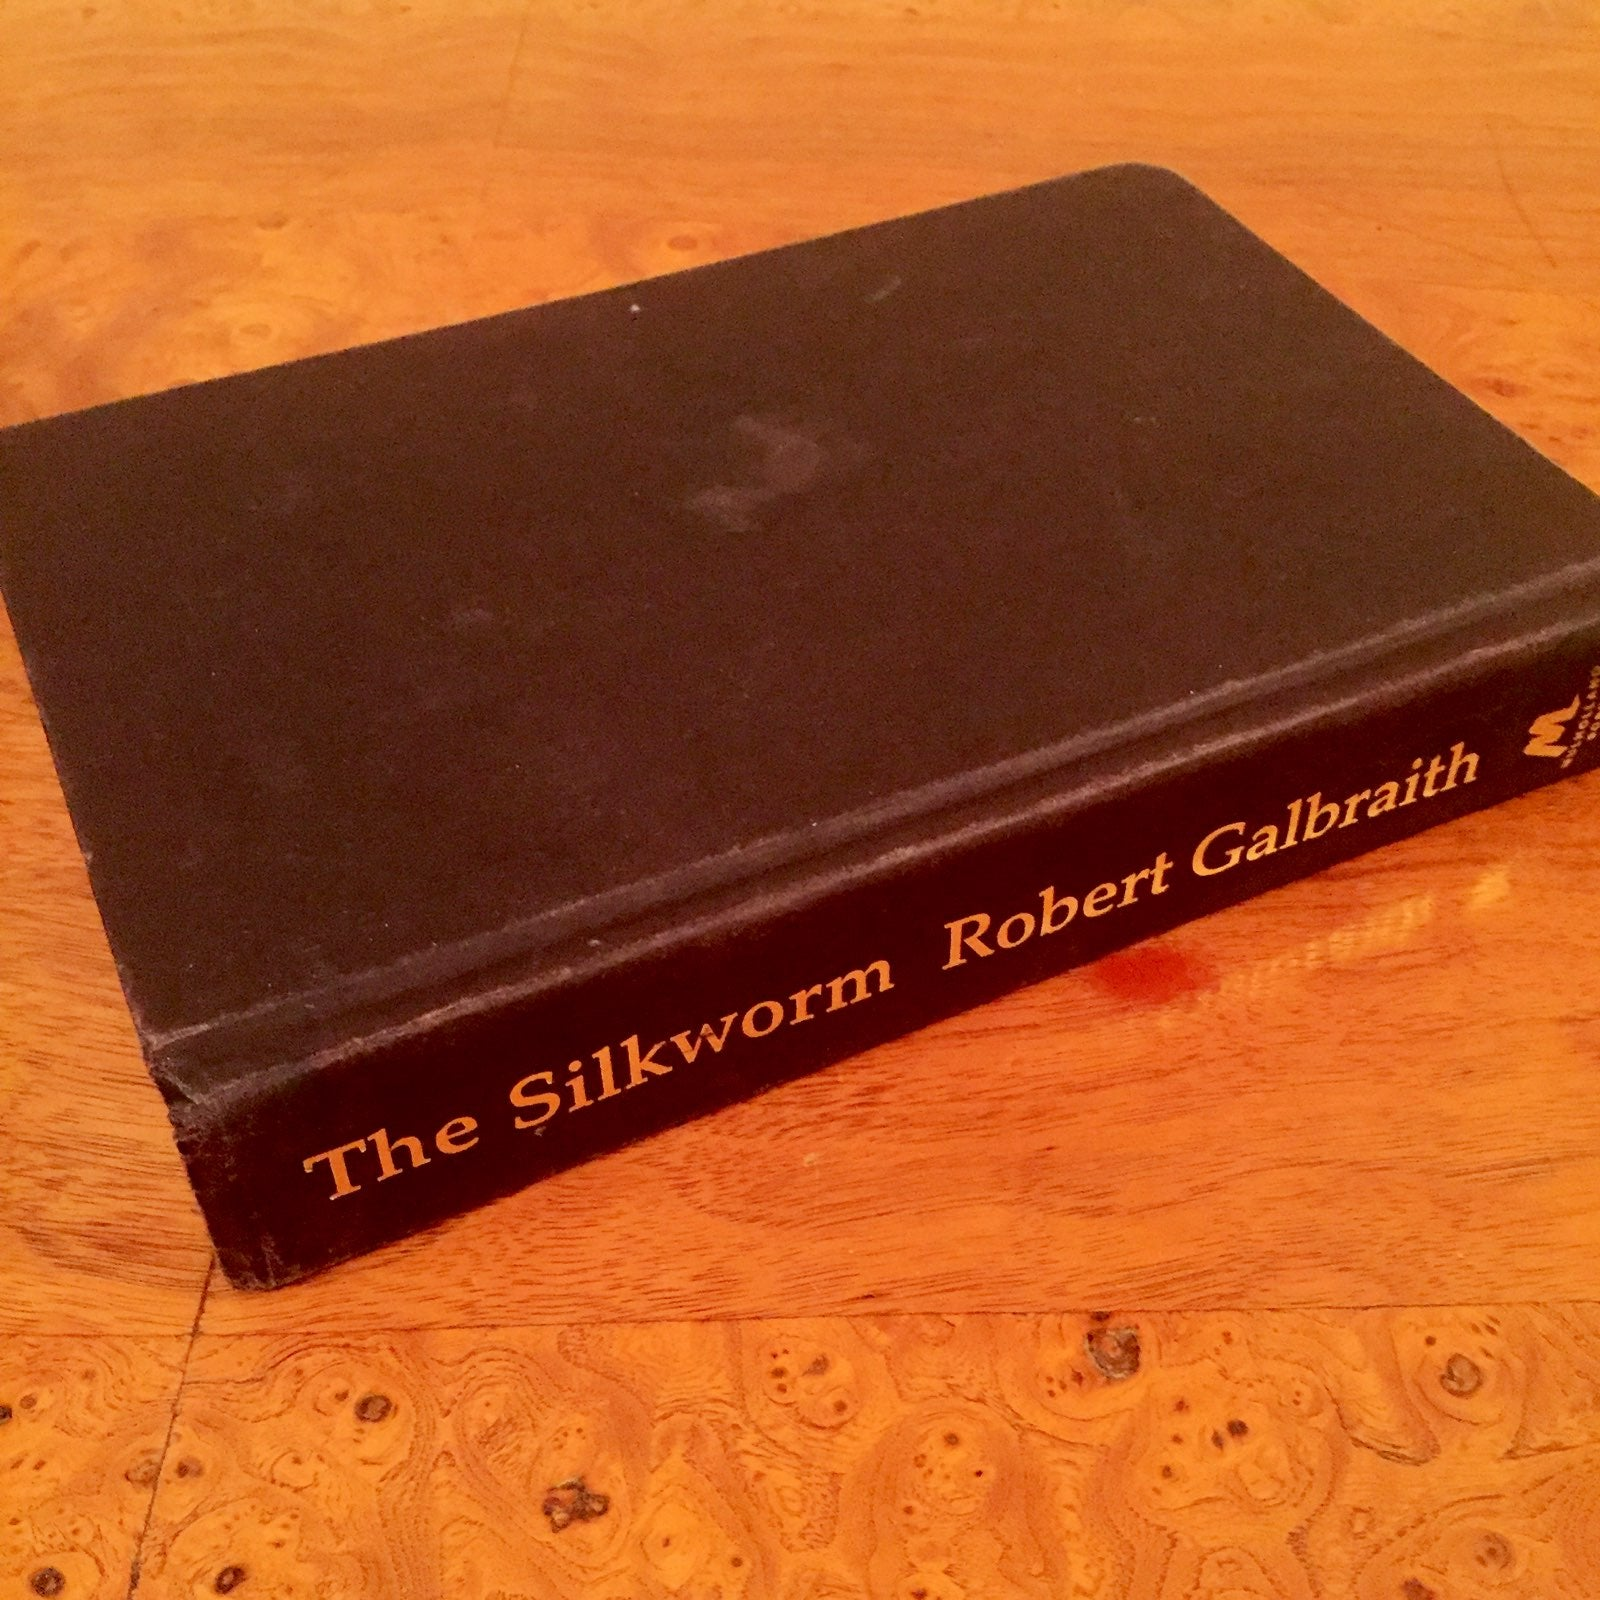 Hardcover The Silkworm by J.K. Rowling